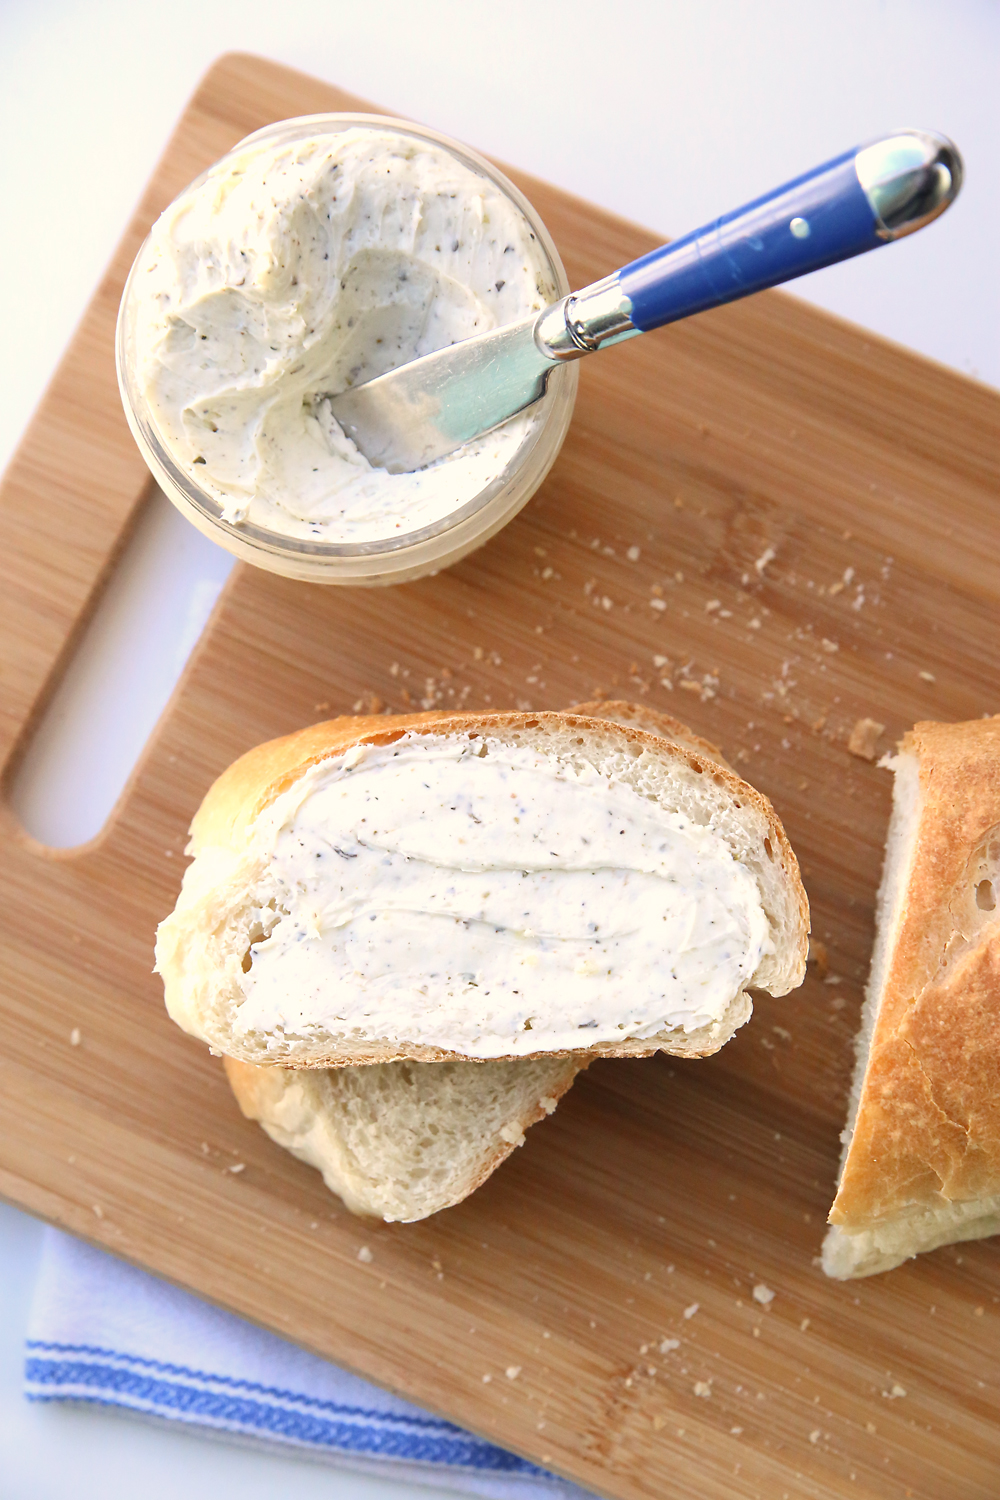 Learn how to make amazing homemade french bread with this easy recipe and video tutorial. It's so delicious! And try the herbed garlic butter too.